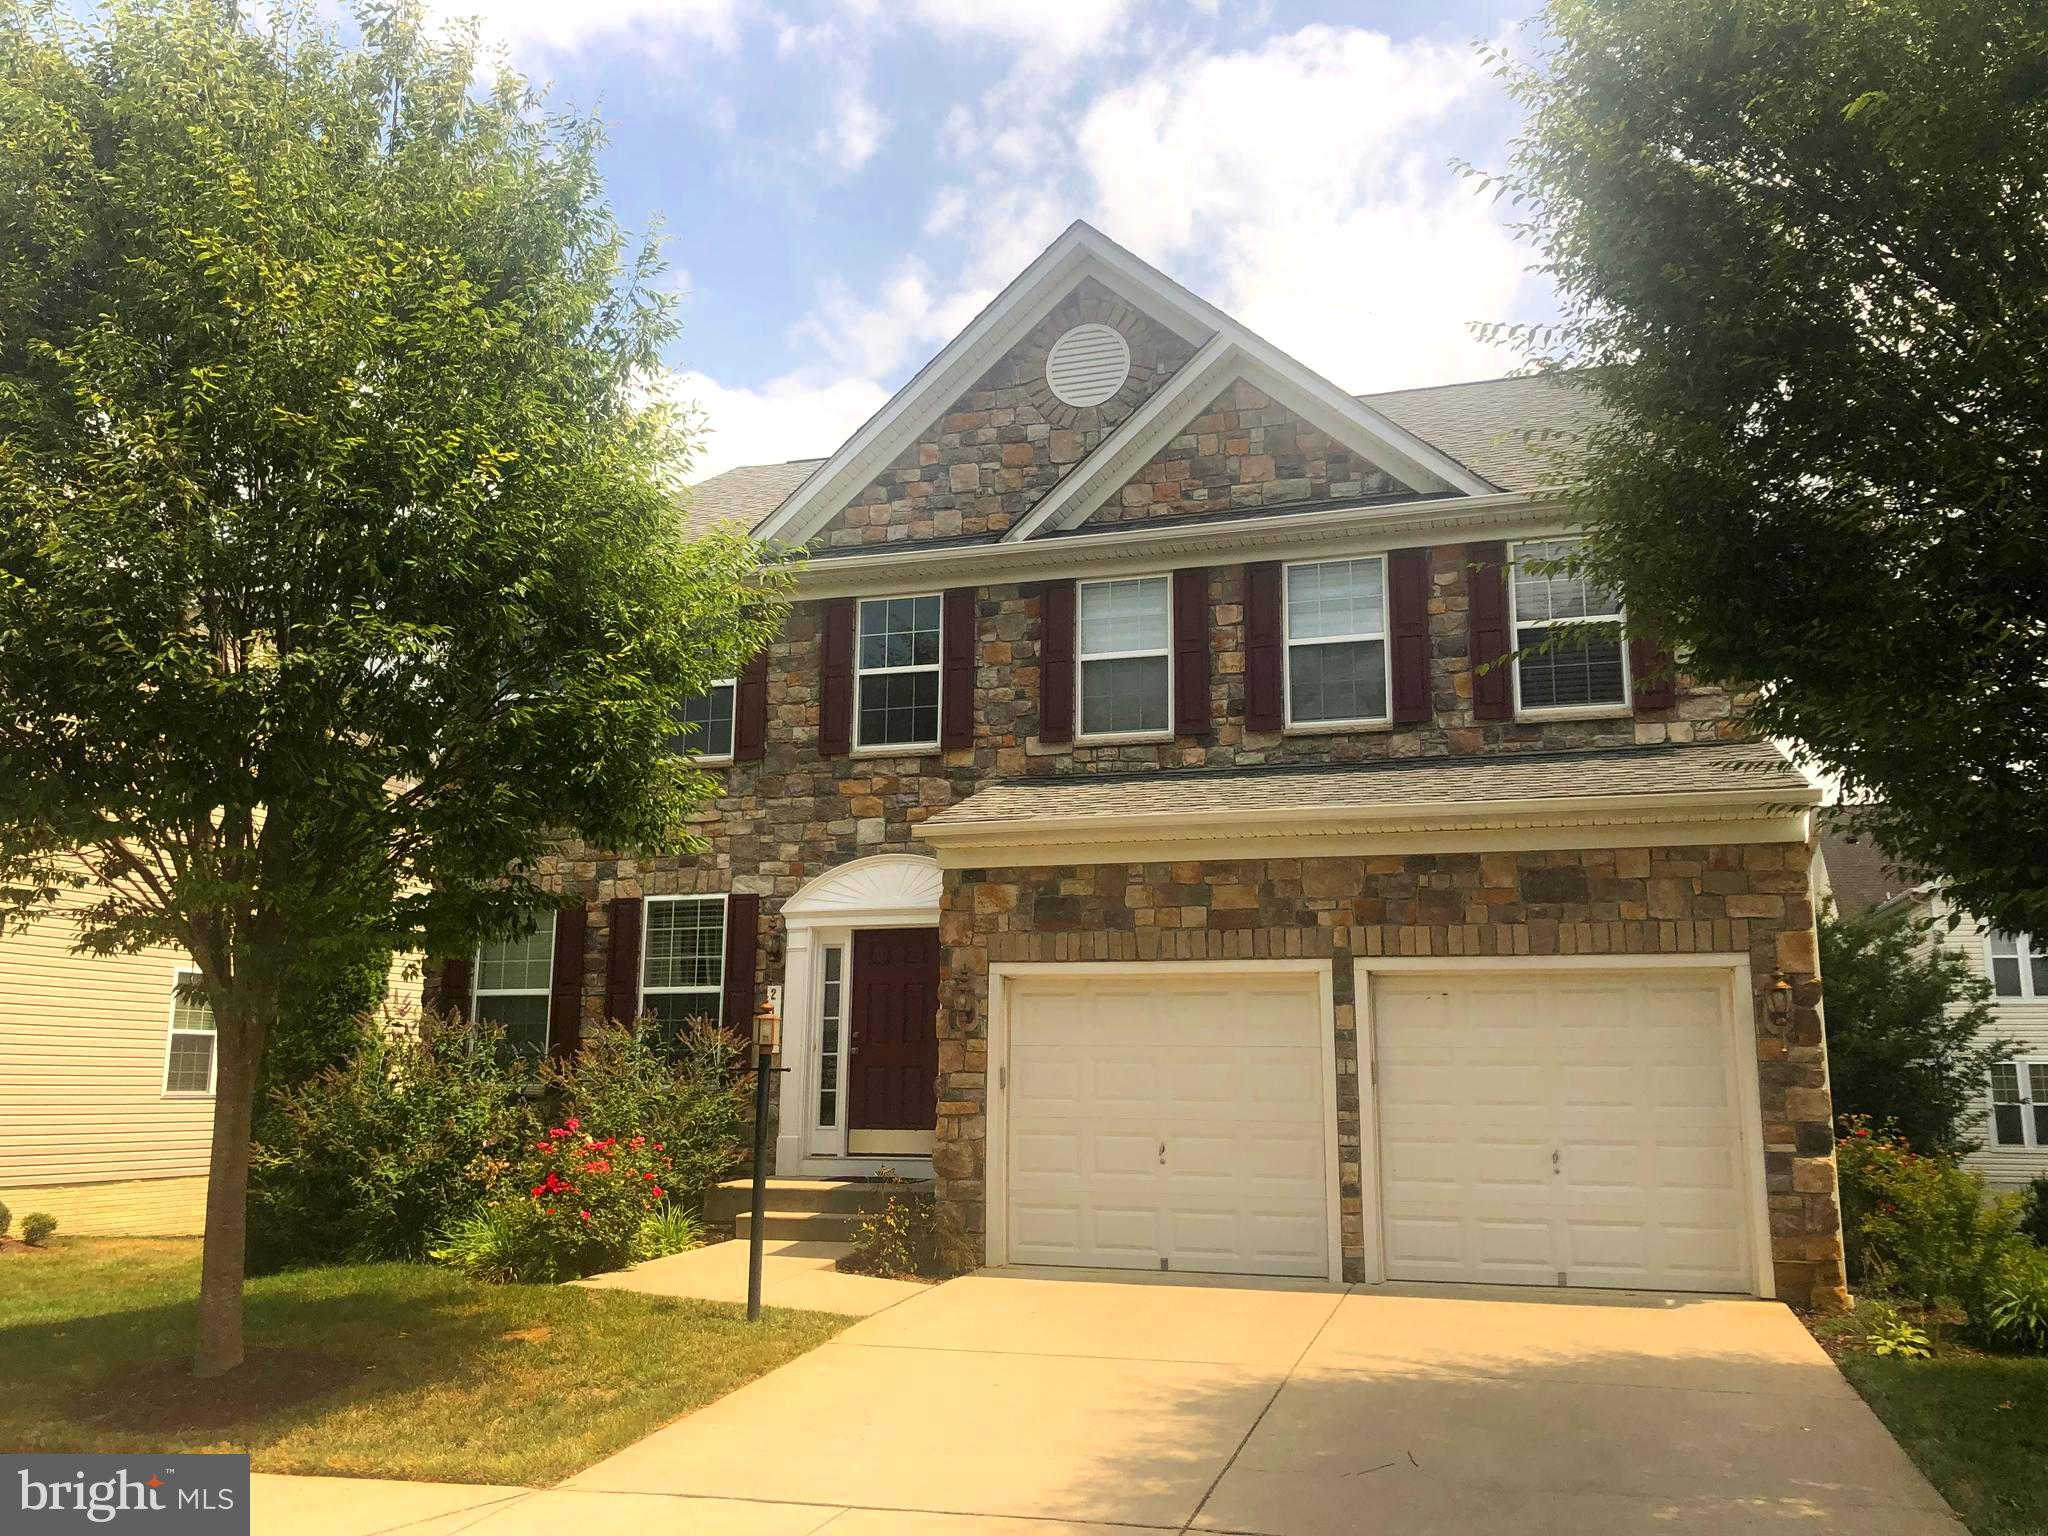 Another Property Rented - 2109 George Boiardi Lane, Annapolis, MD 21401